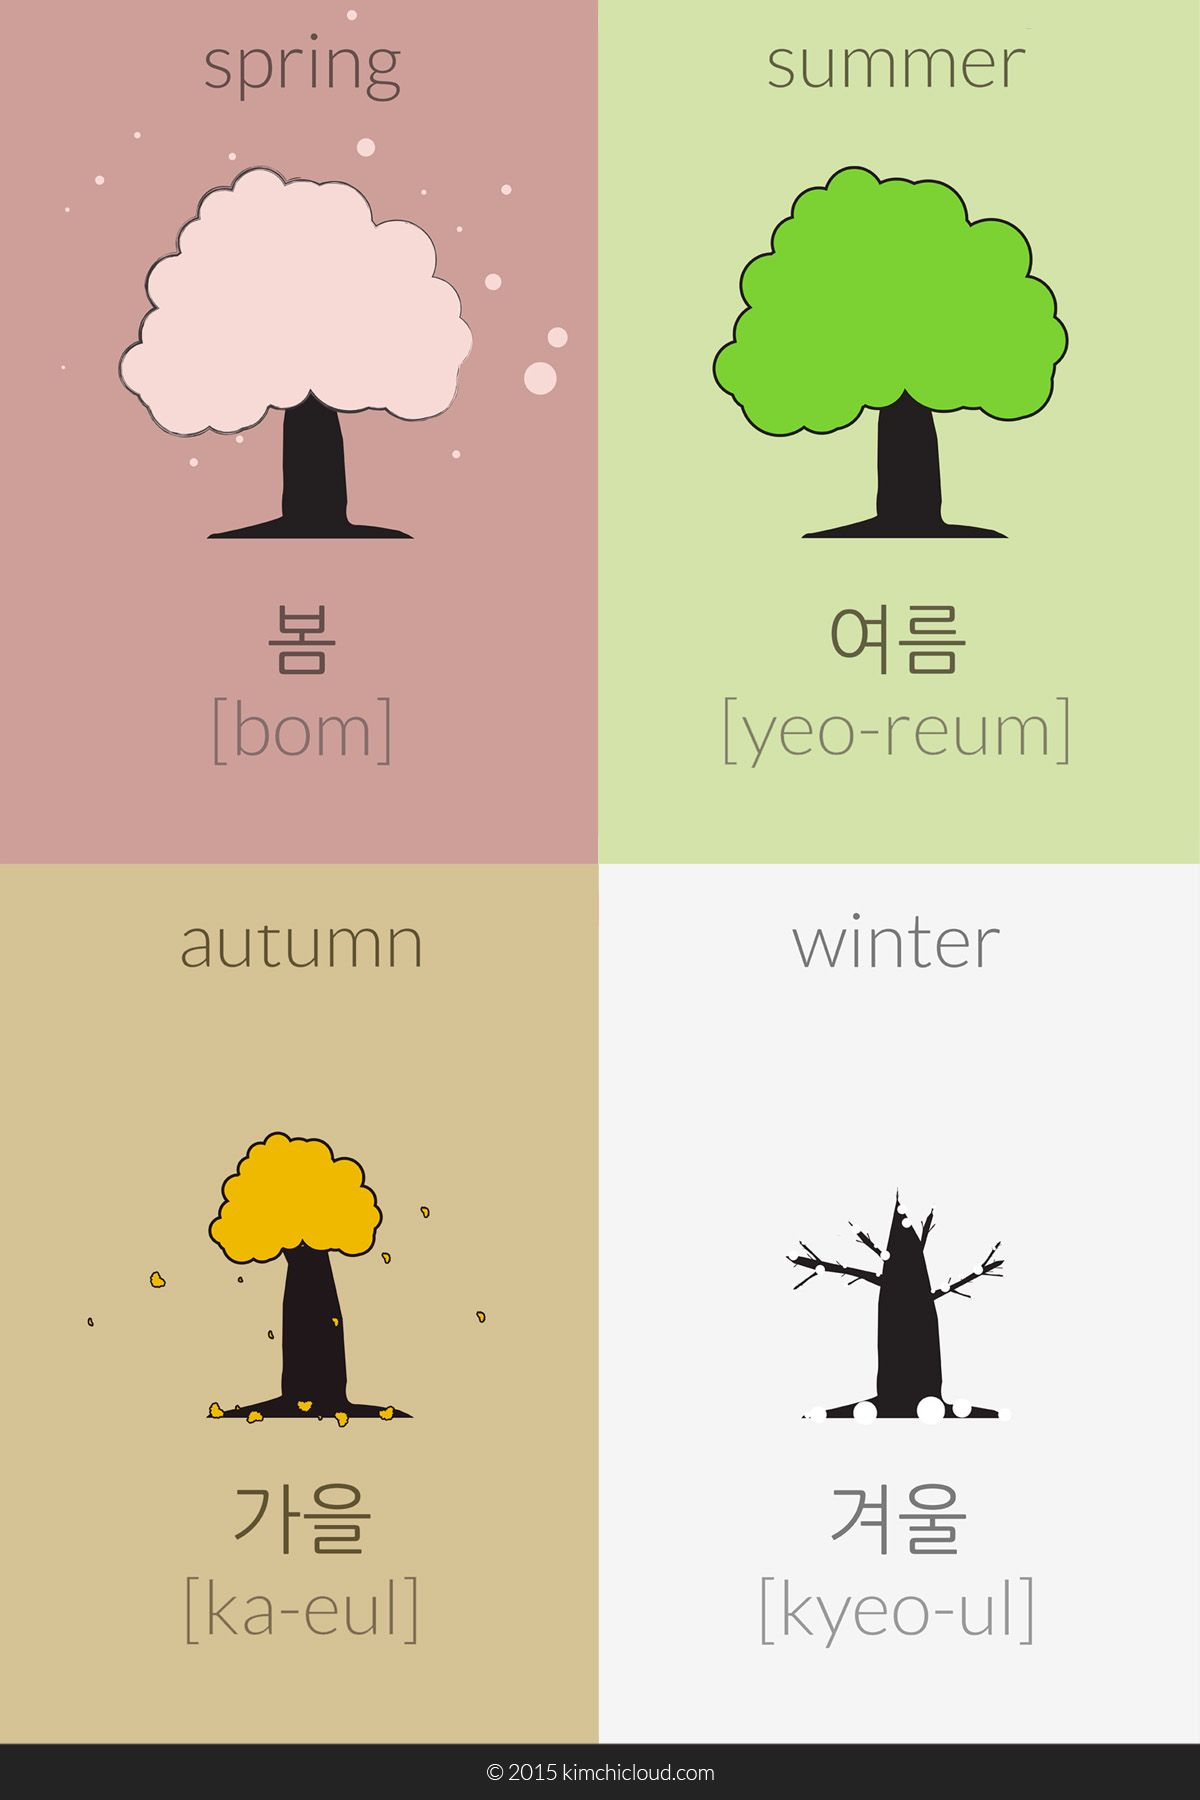 The Words For The Four Seasons In Korean Are Summer